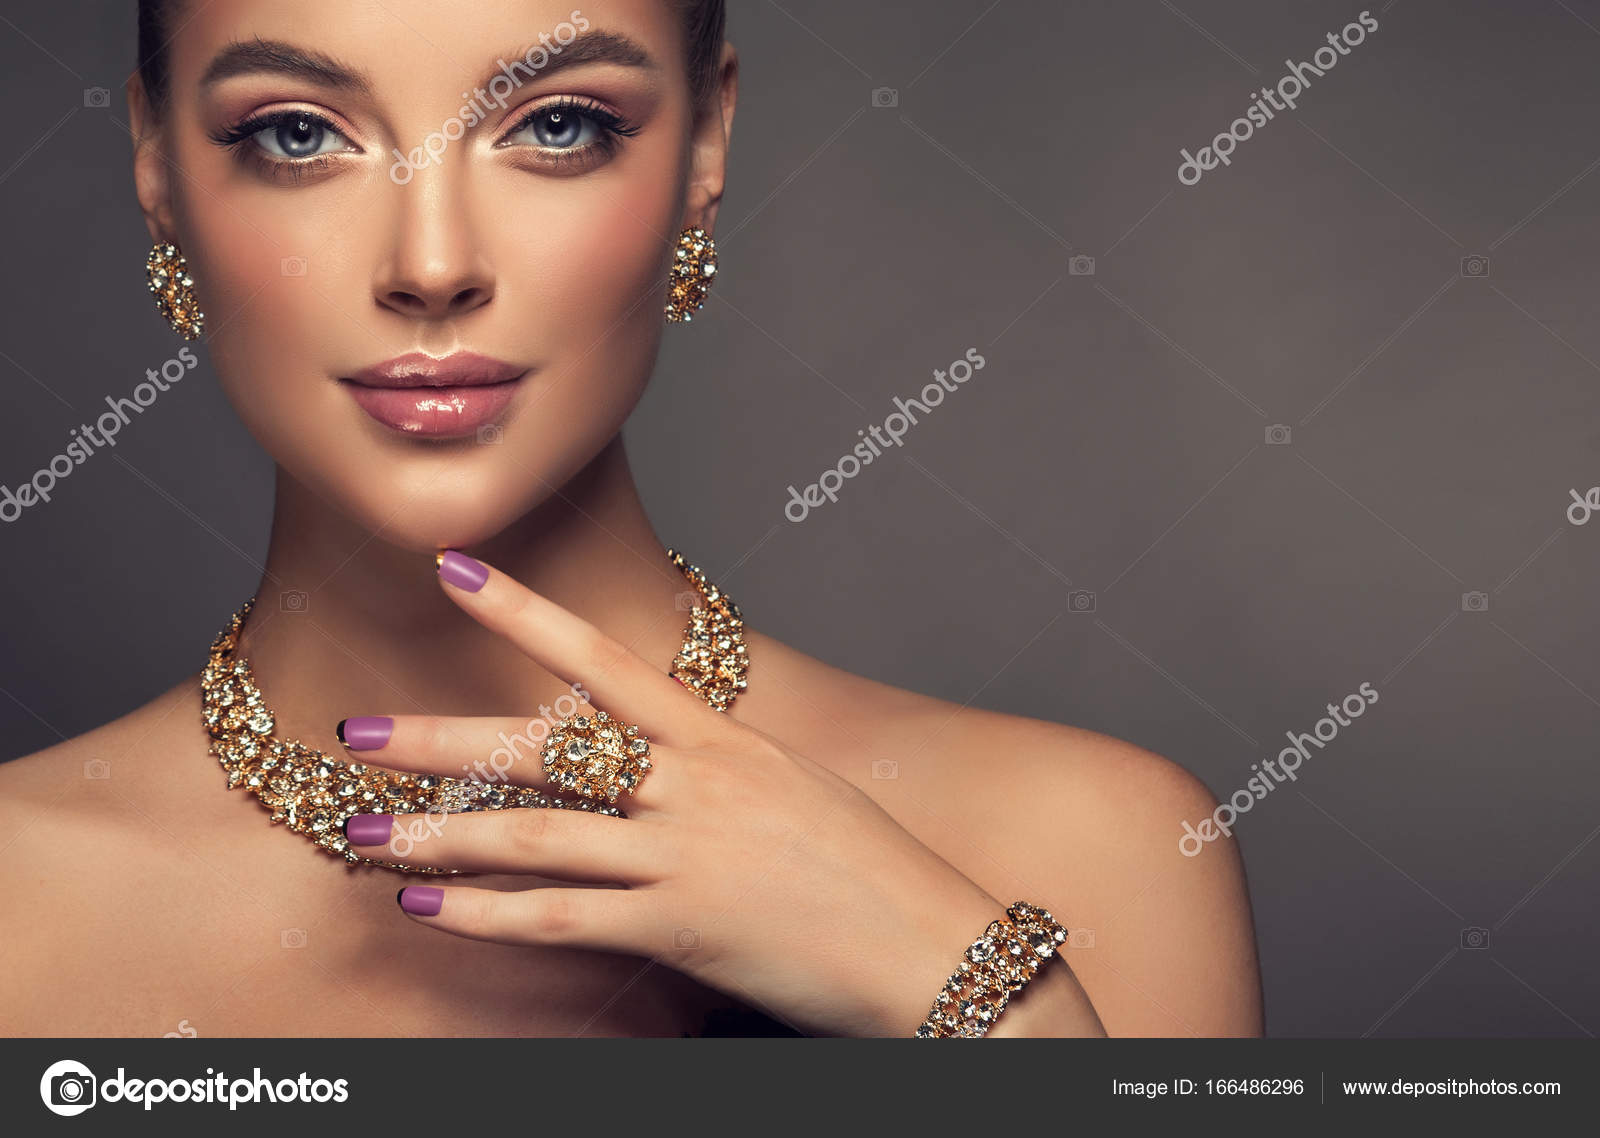 1af42877328 Beautiful girl with jewelry . A set of jewelry for woman ,necklace ,earrings  and bracelet. Beauty and accessories. bijouterie — Photo by Sofia_Zhuravets